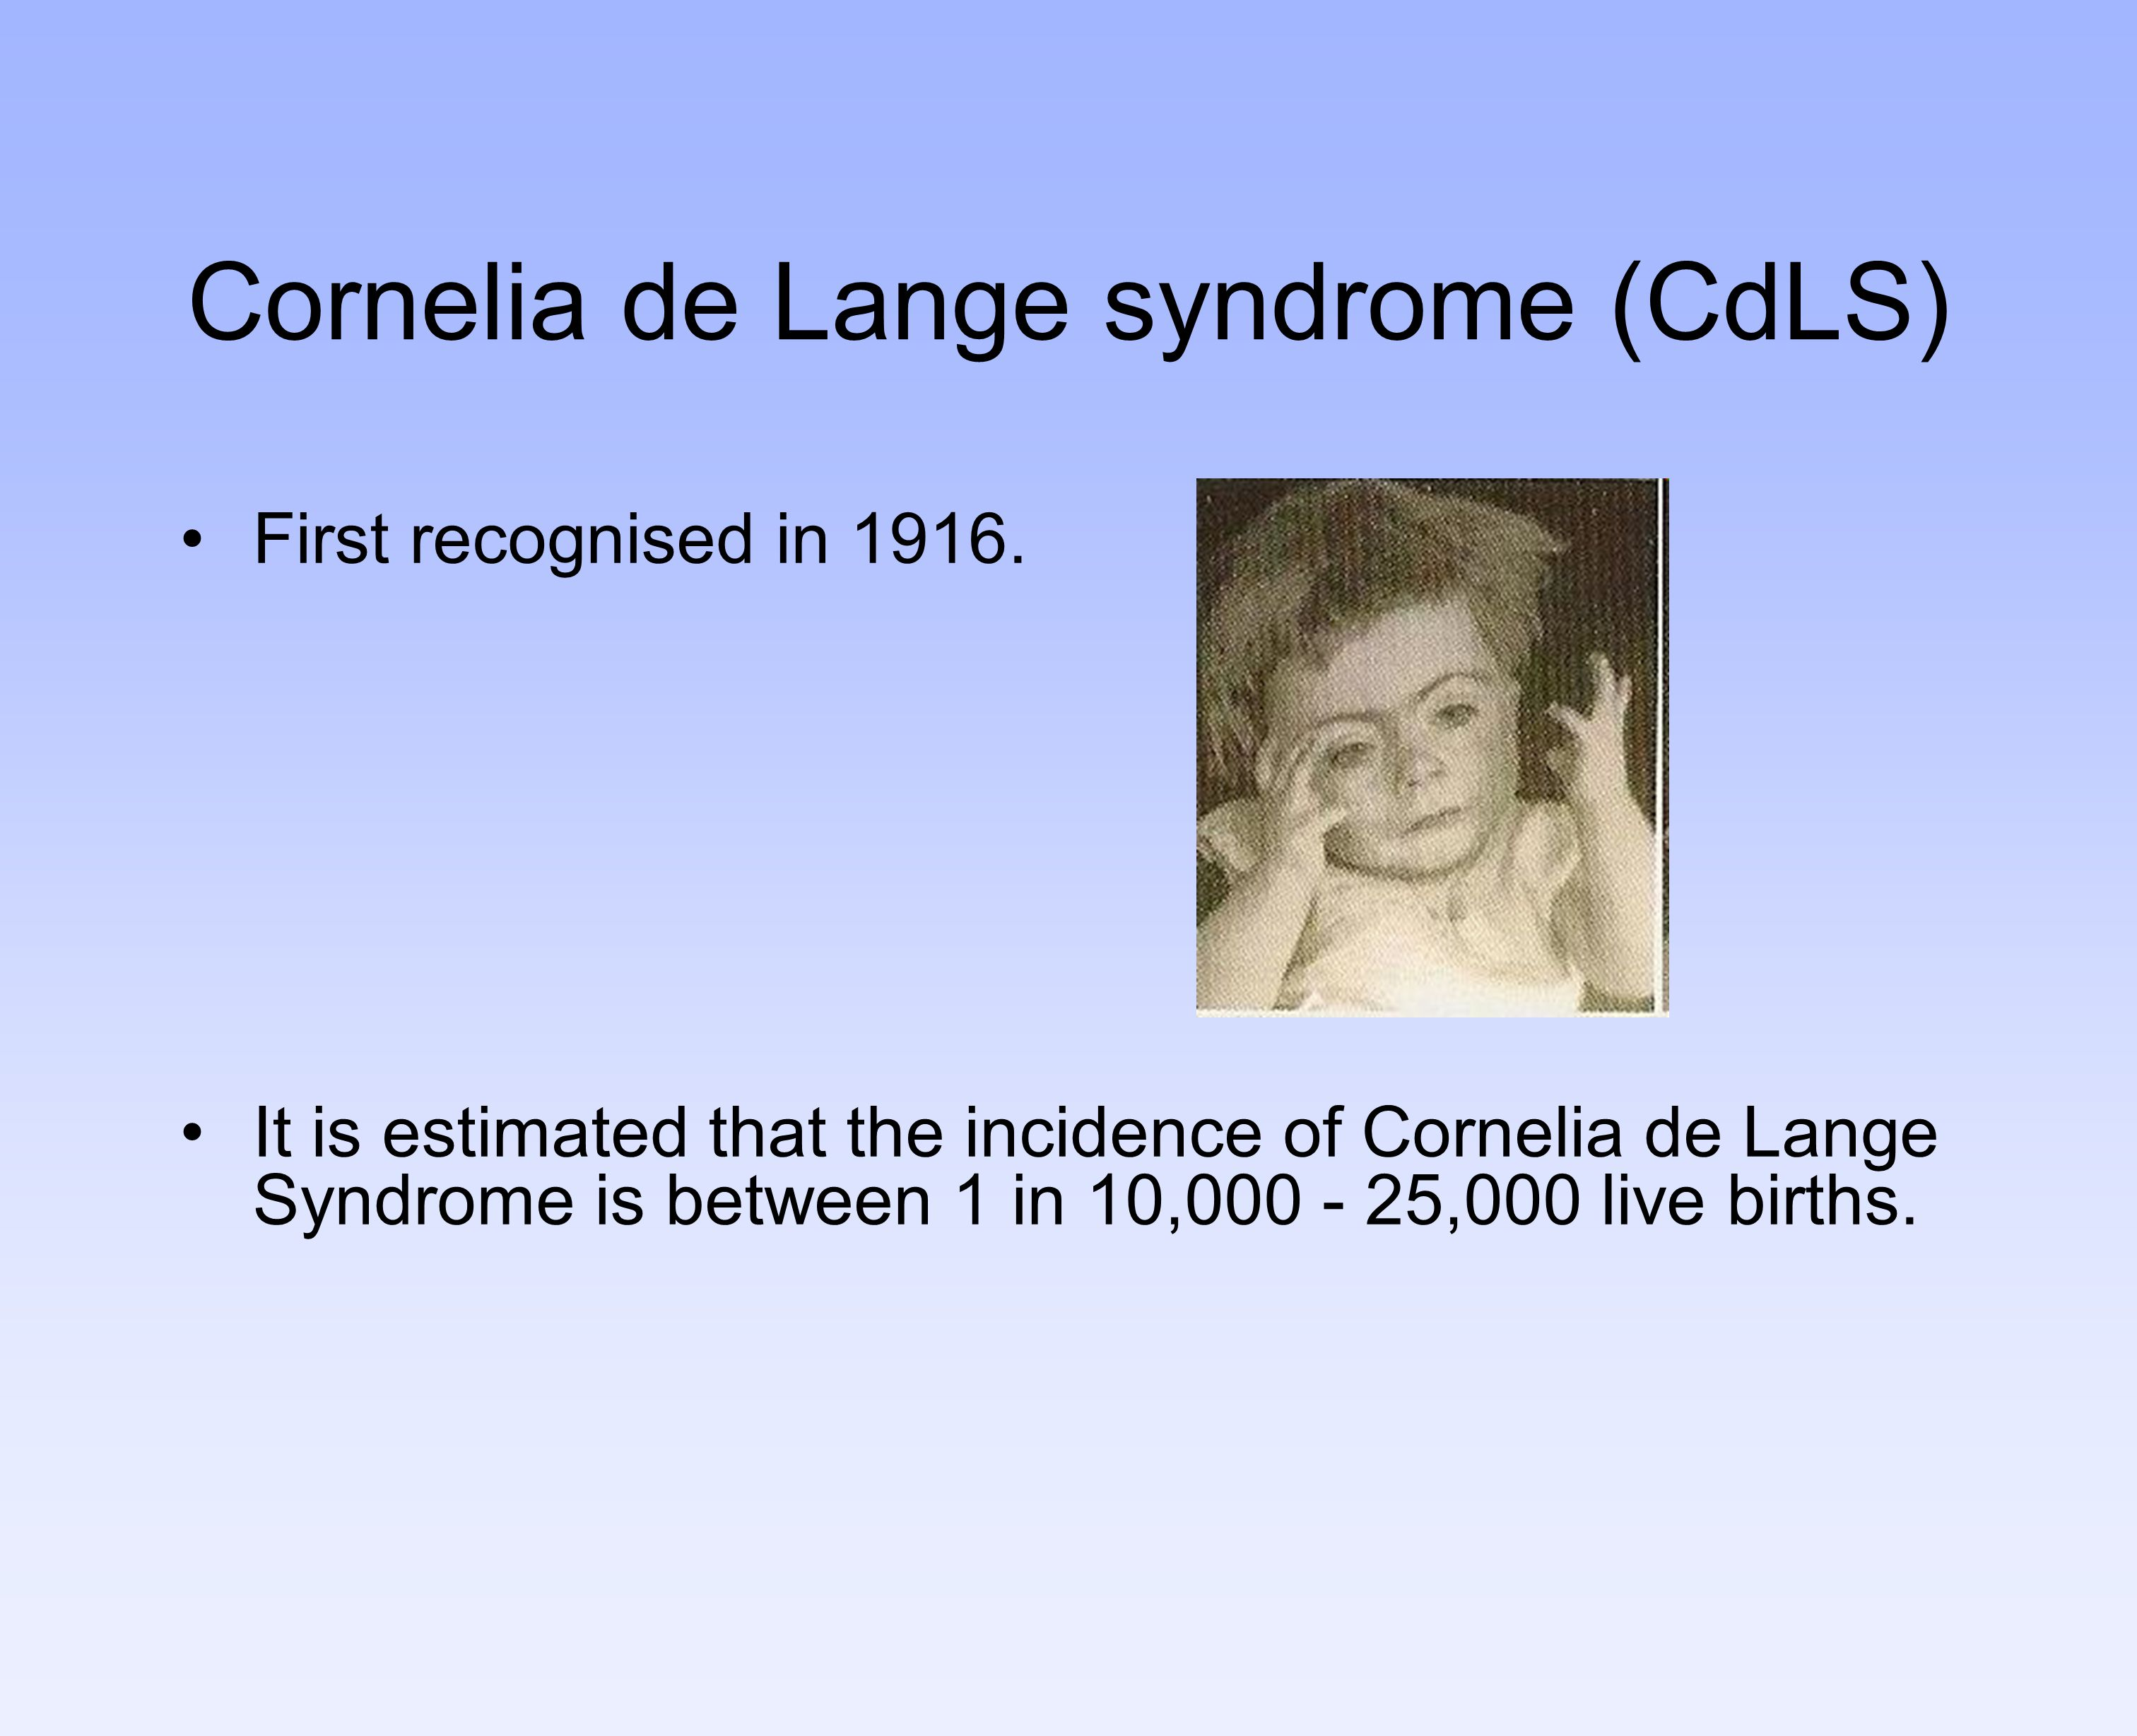 Cornelia de Lange syndrome (CdLS) First recognised in 1916. It is estimated that the incidence of Cornelia de Lange Syndrome is between 1 in 10,000 -